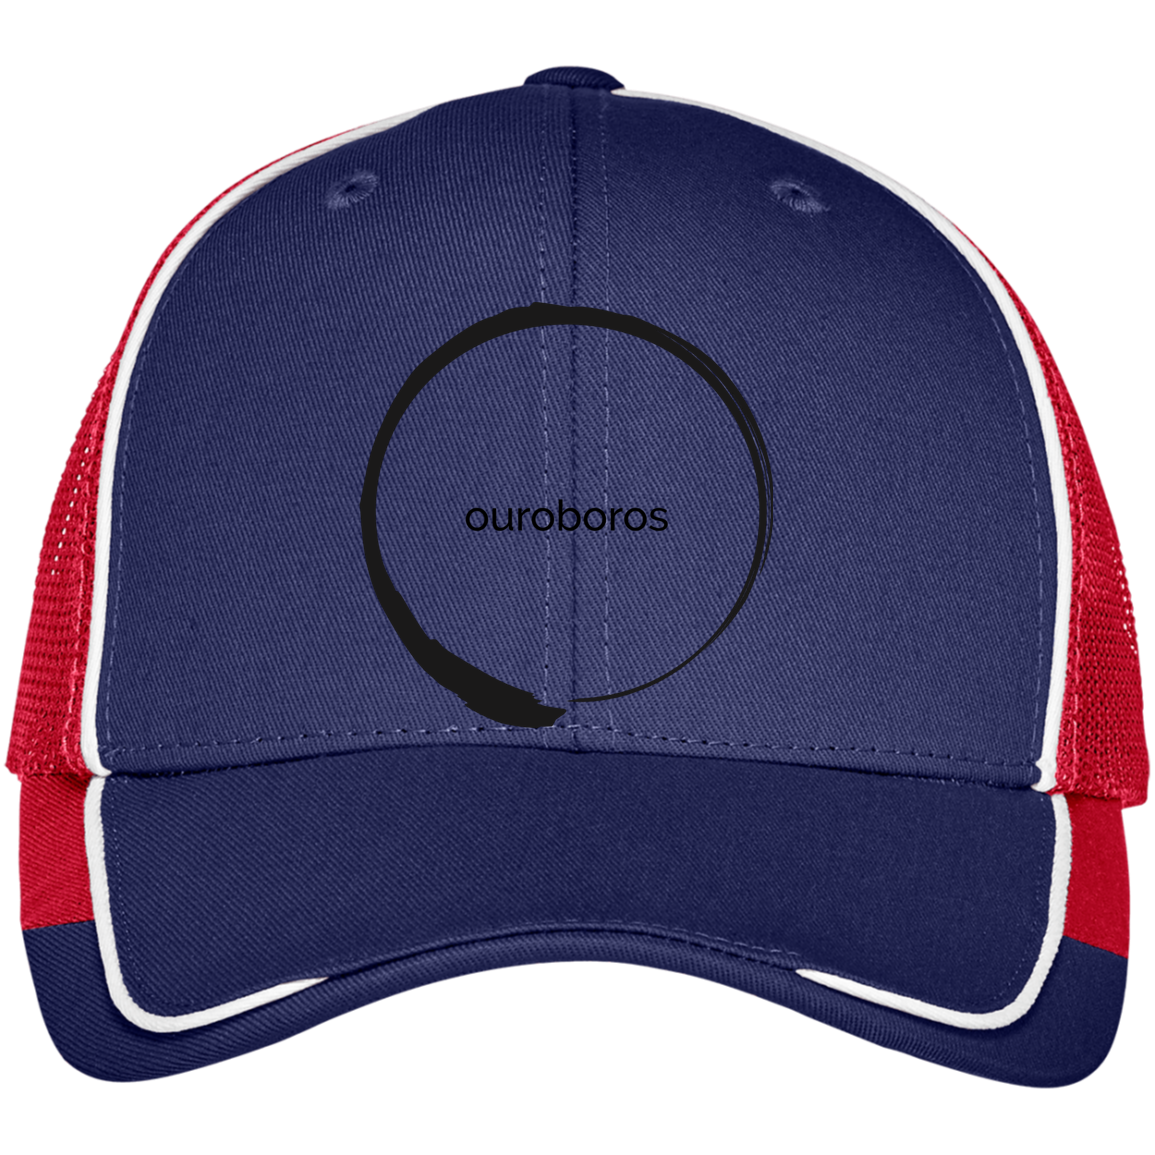 Ouroboros Colorblock Mesh Back Cap